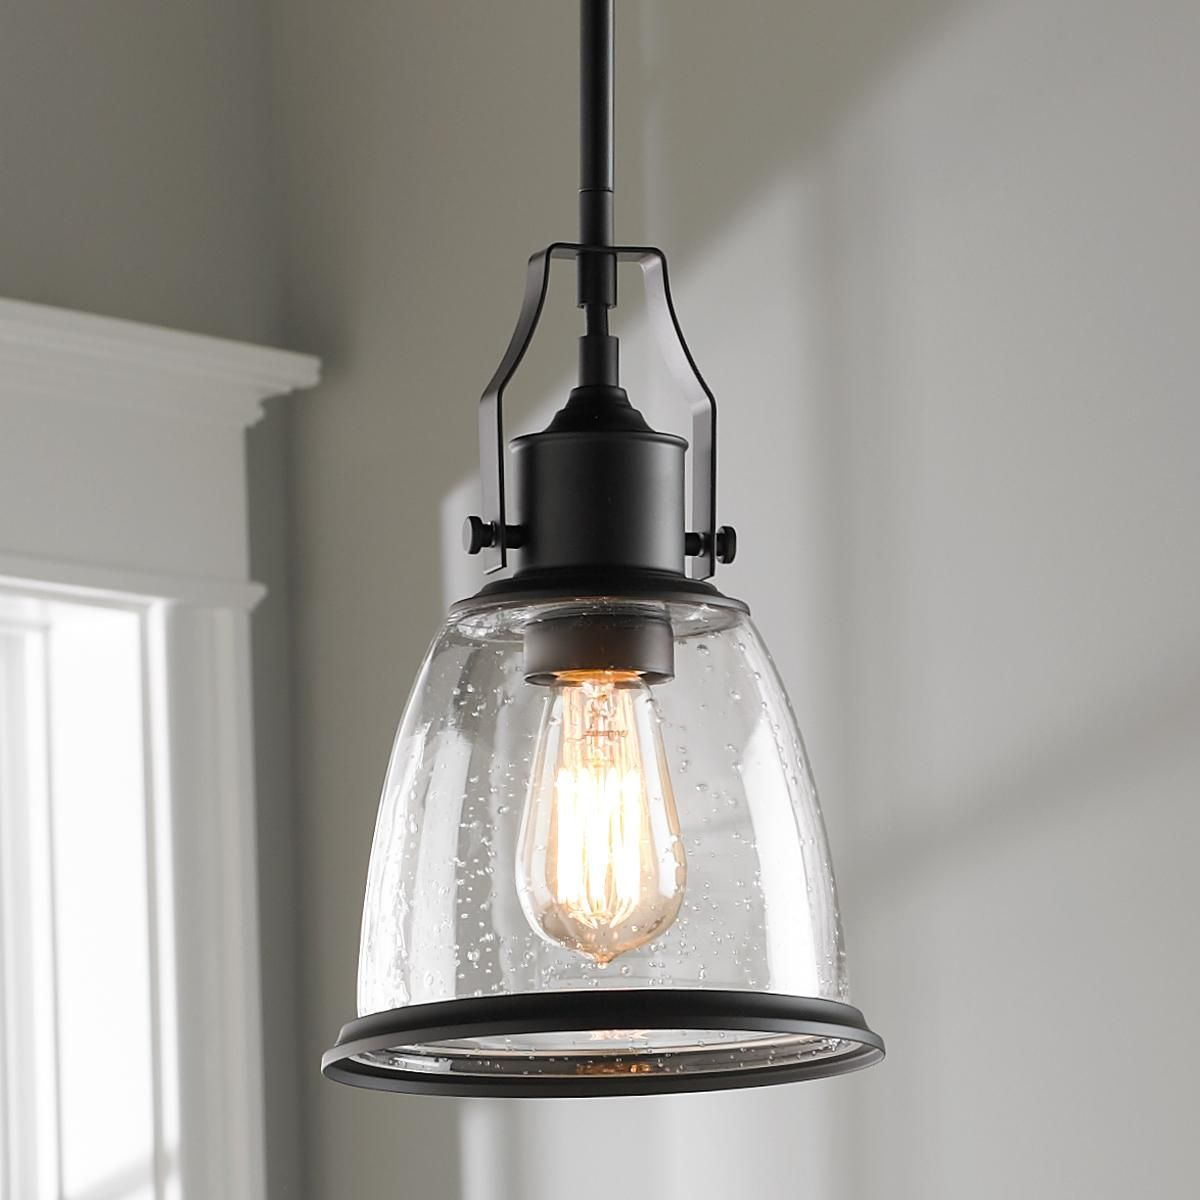 Industrial Bell Pendant Light: Classic Bell Shade Pendant In 2019